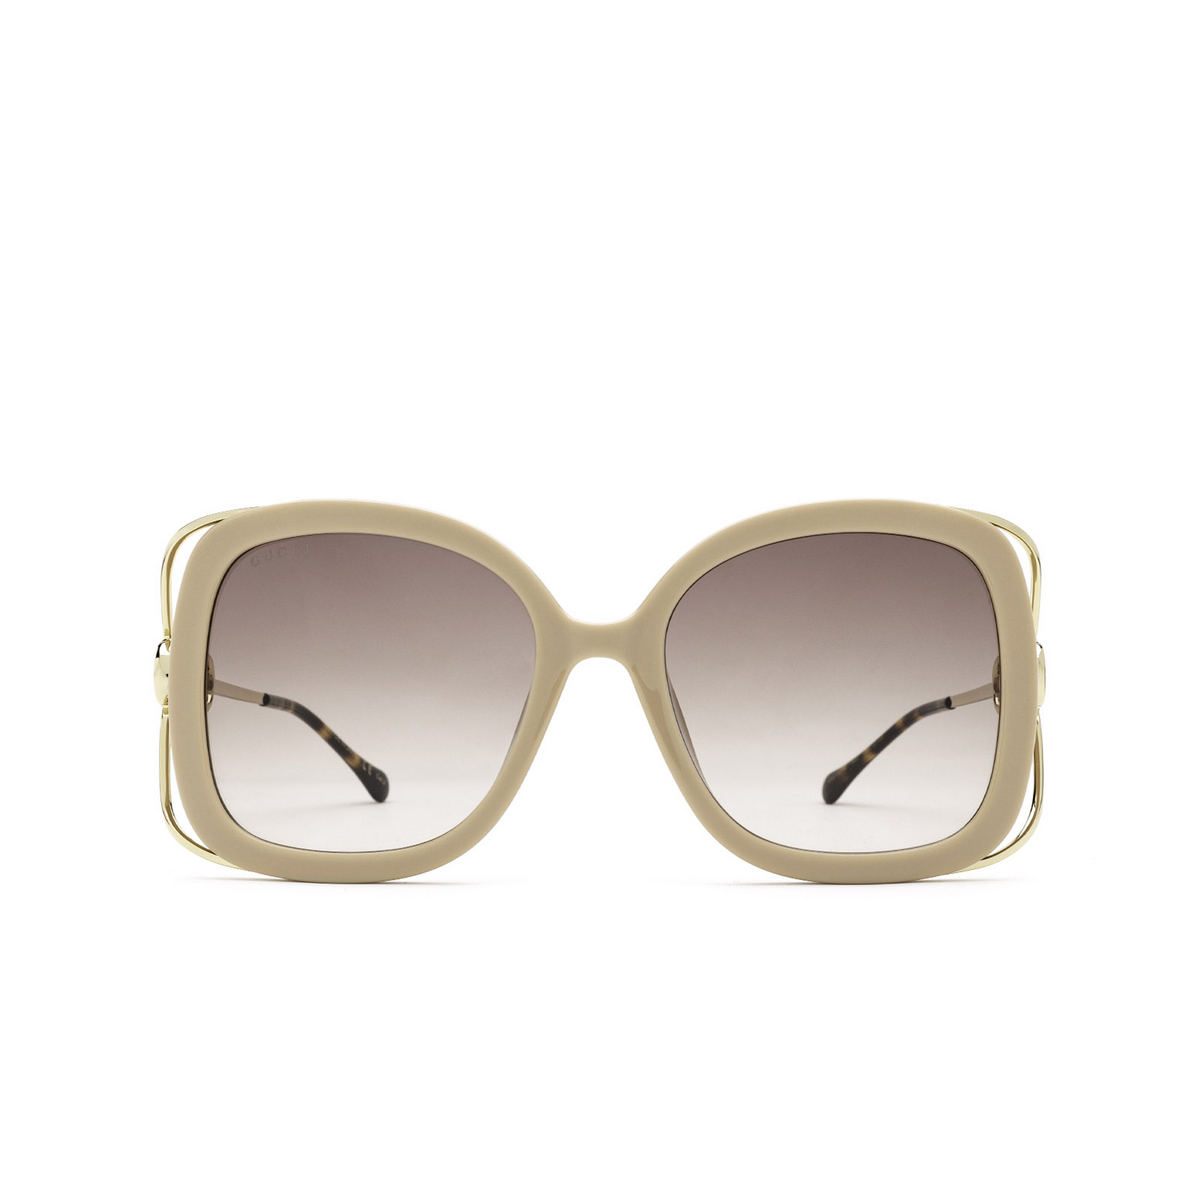 Gucci® Square Sunglasses: GG1021S color Ivory 003 - front view.